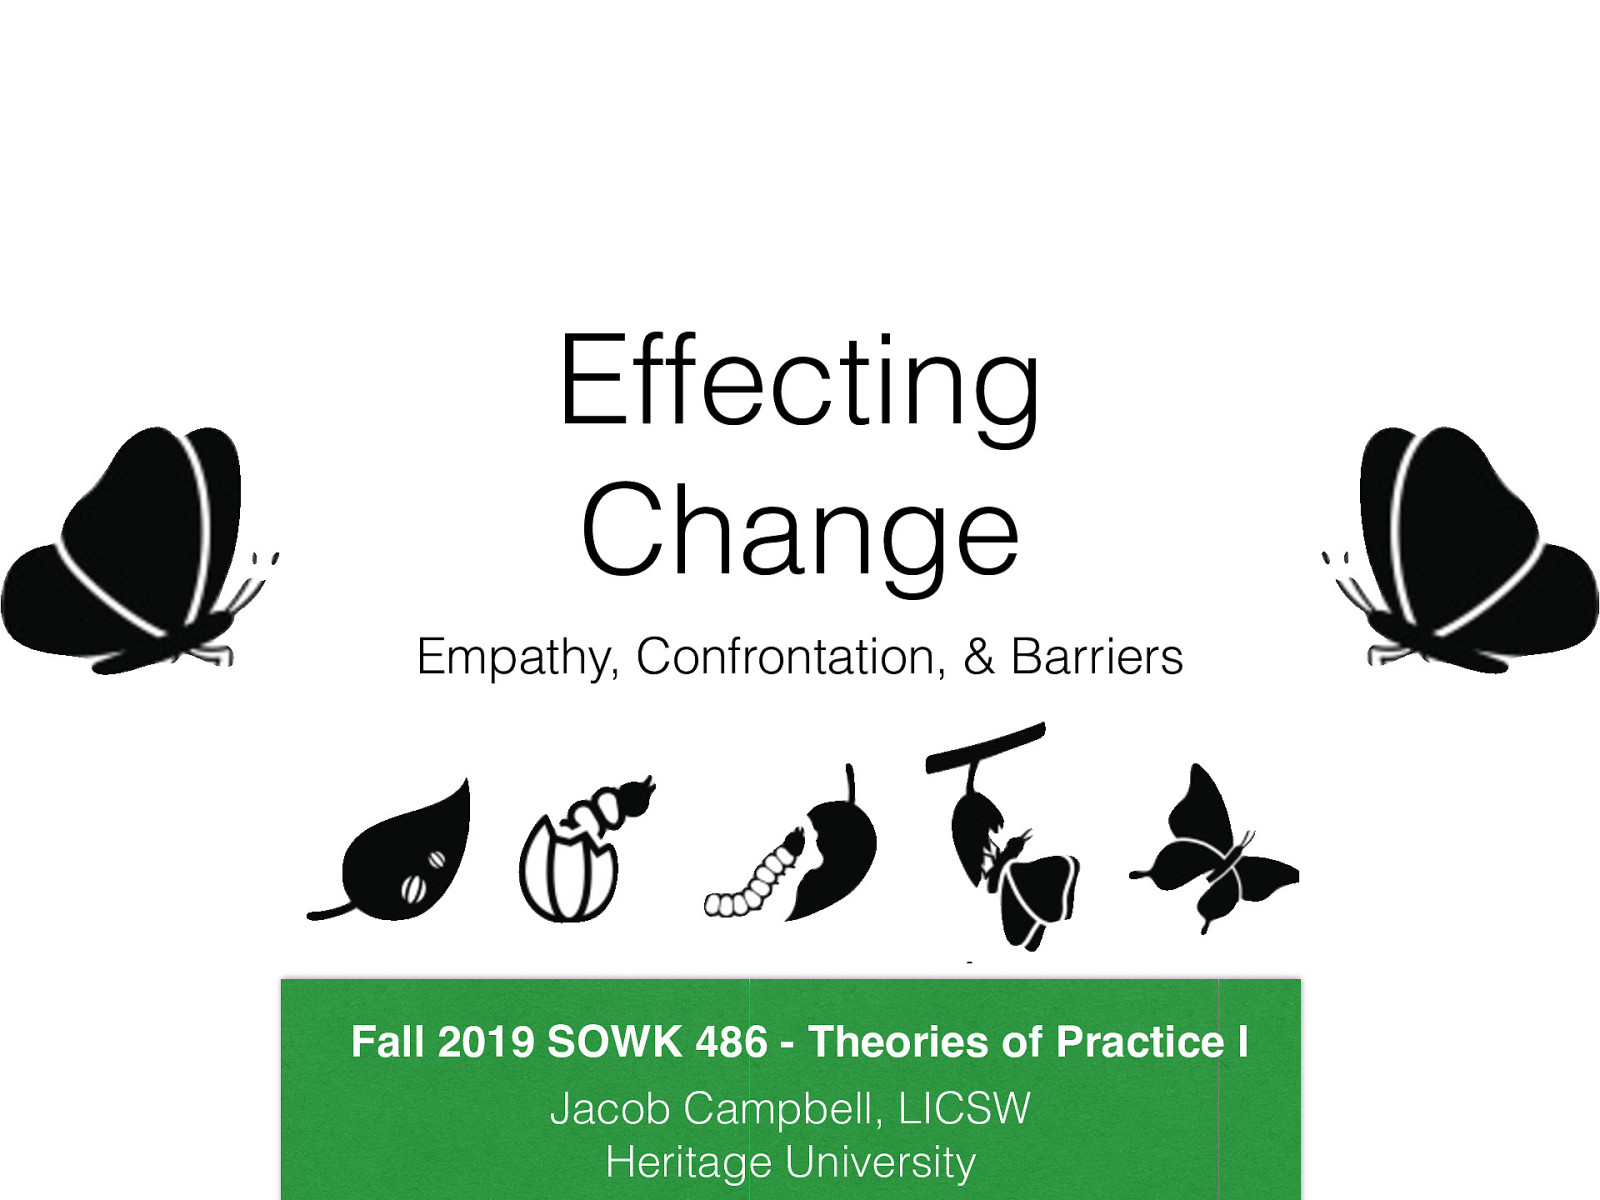 SOWK 486 Fall 2019 Planning: Class 12